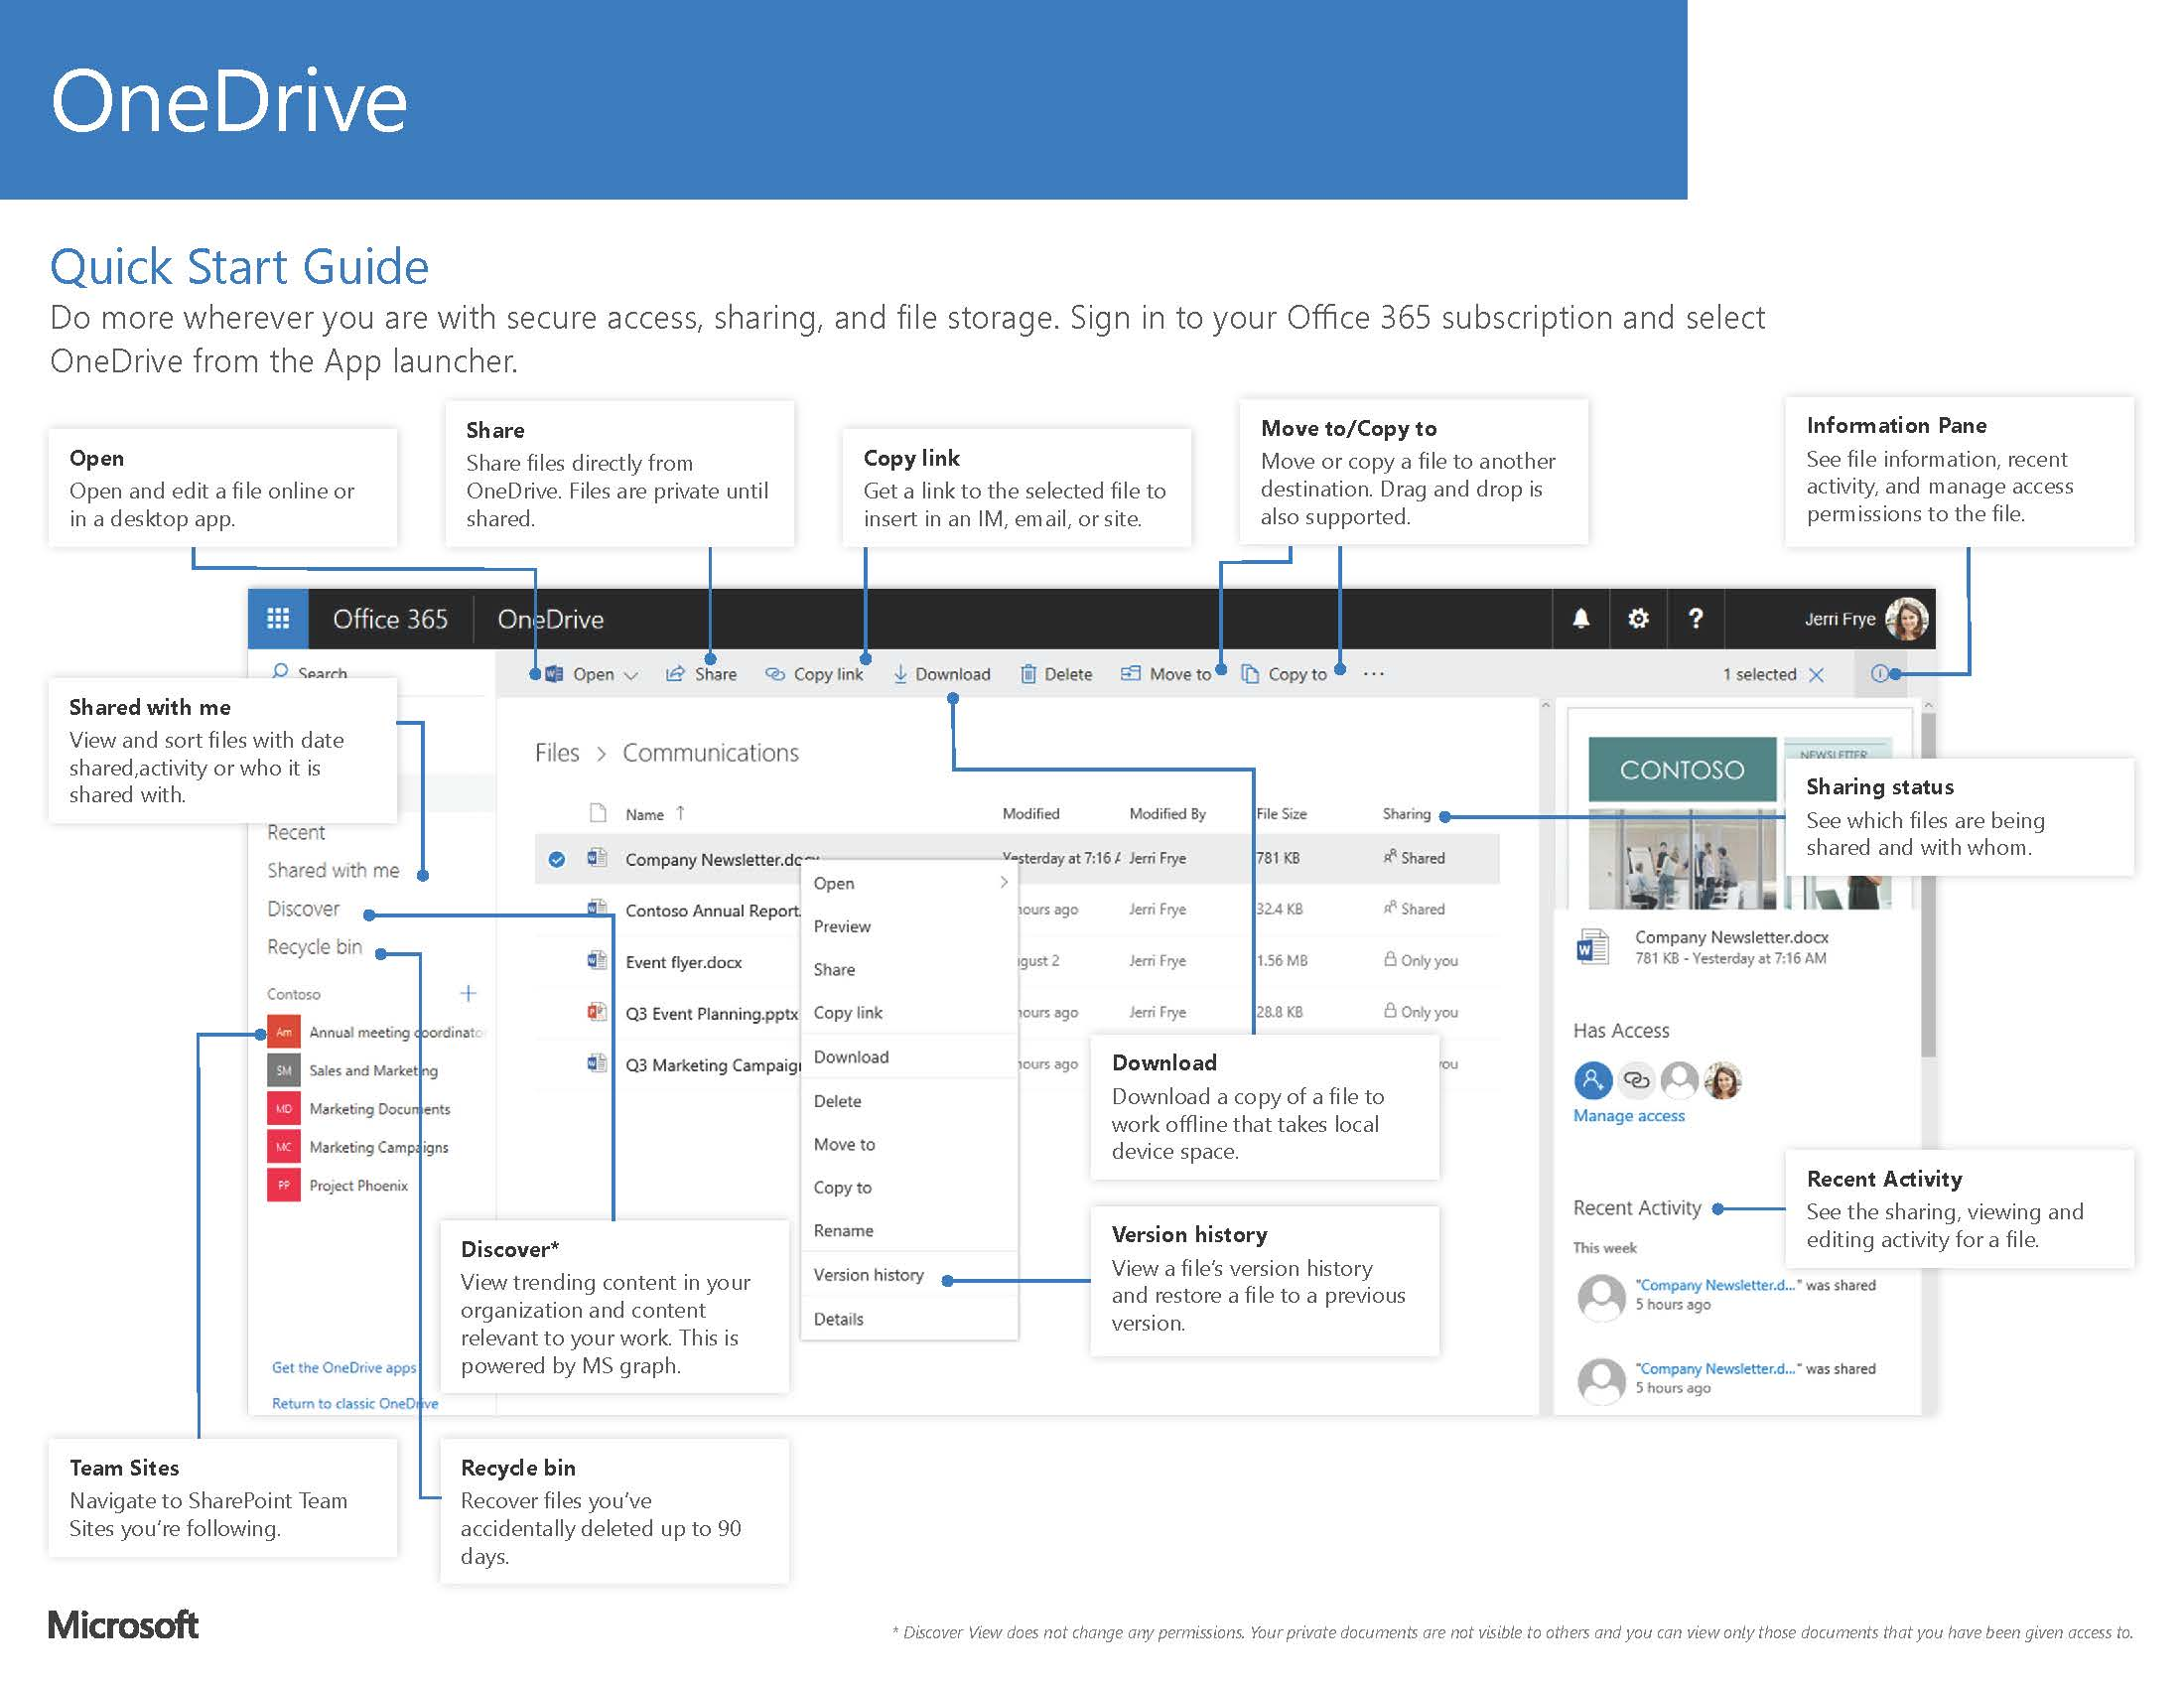 OneDrive_Page_1.jpg